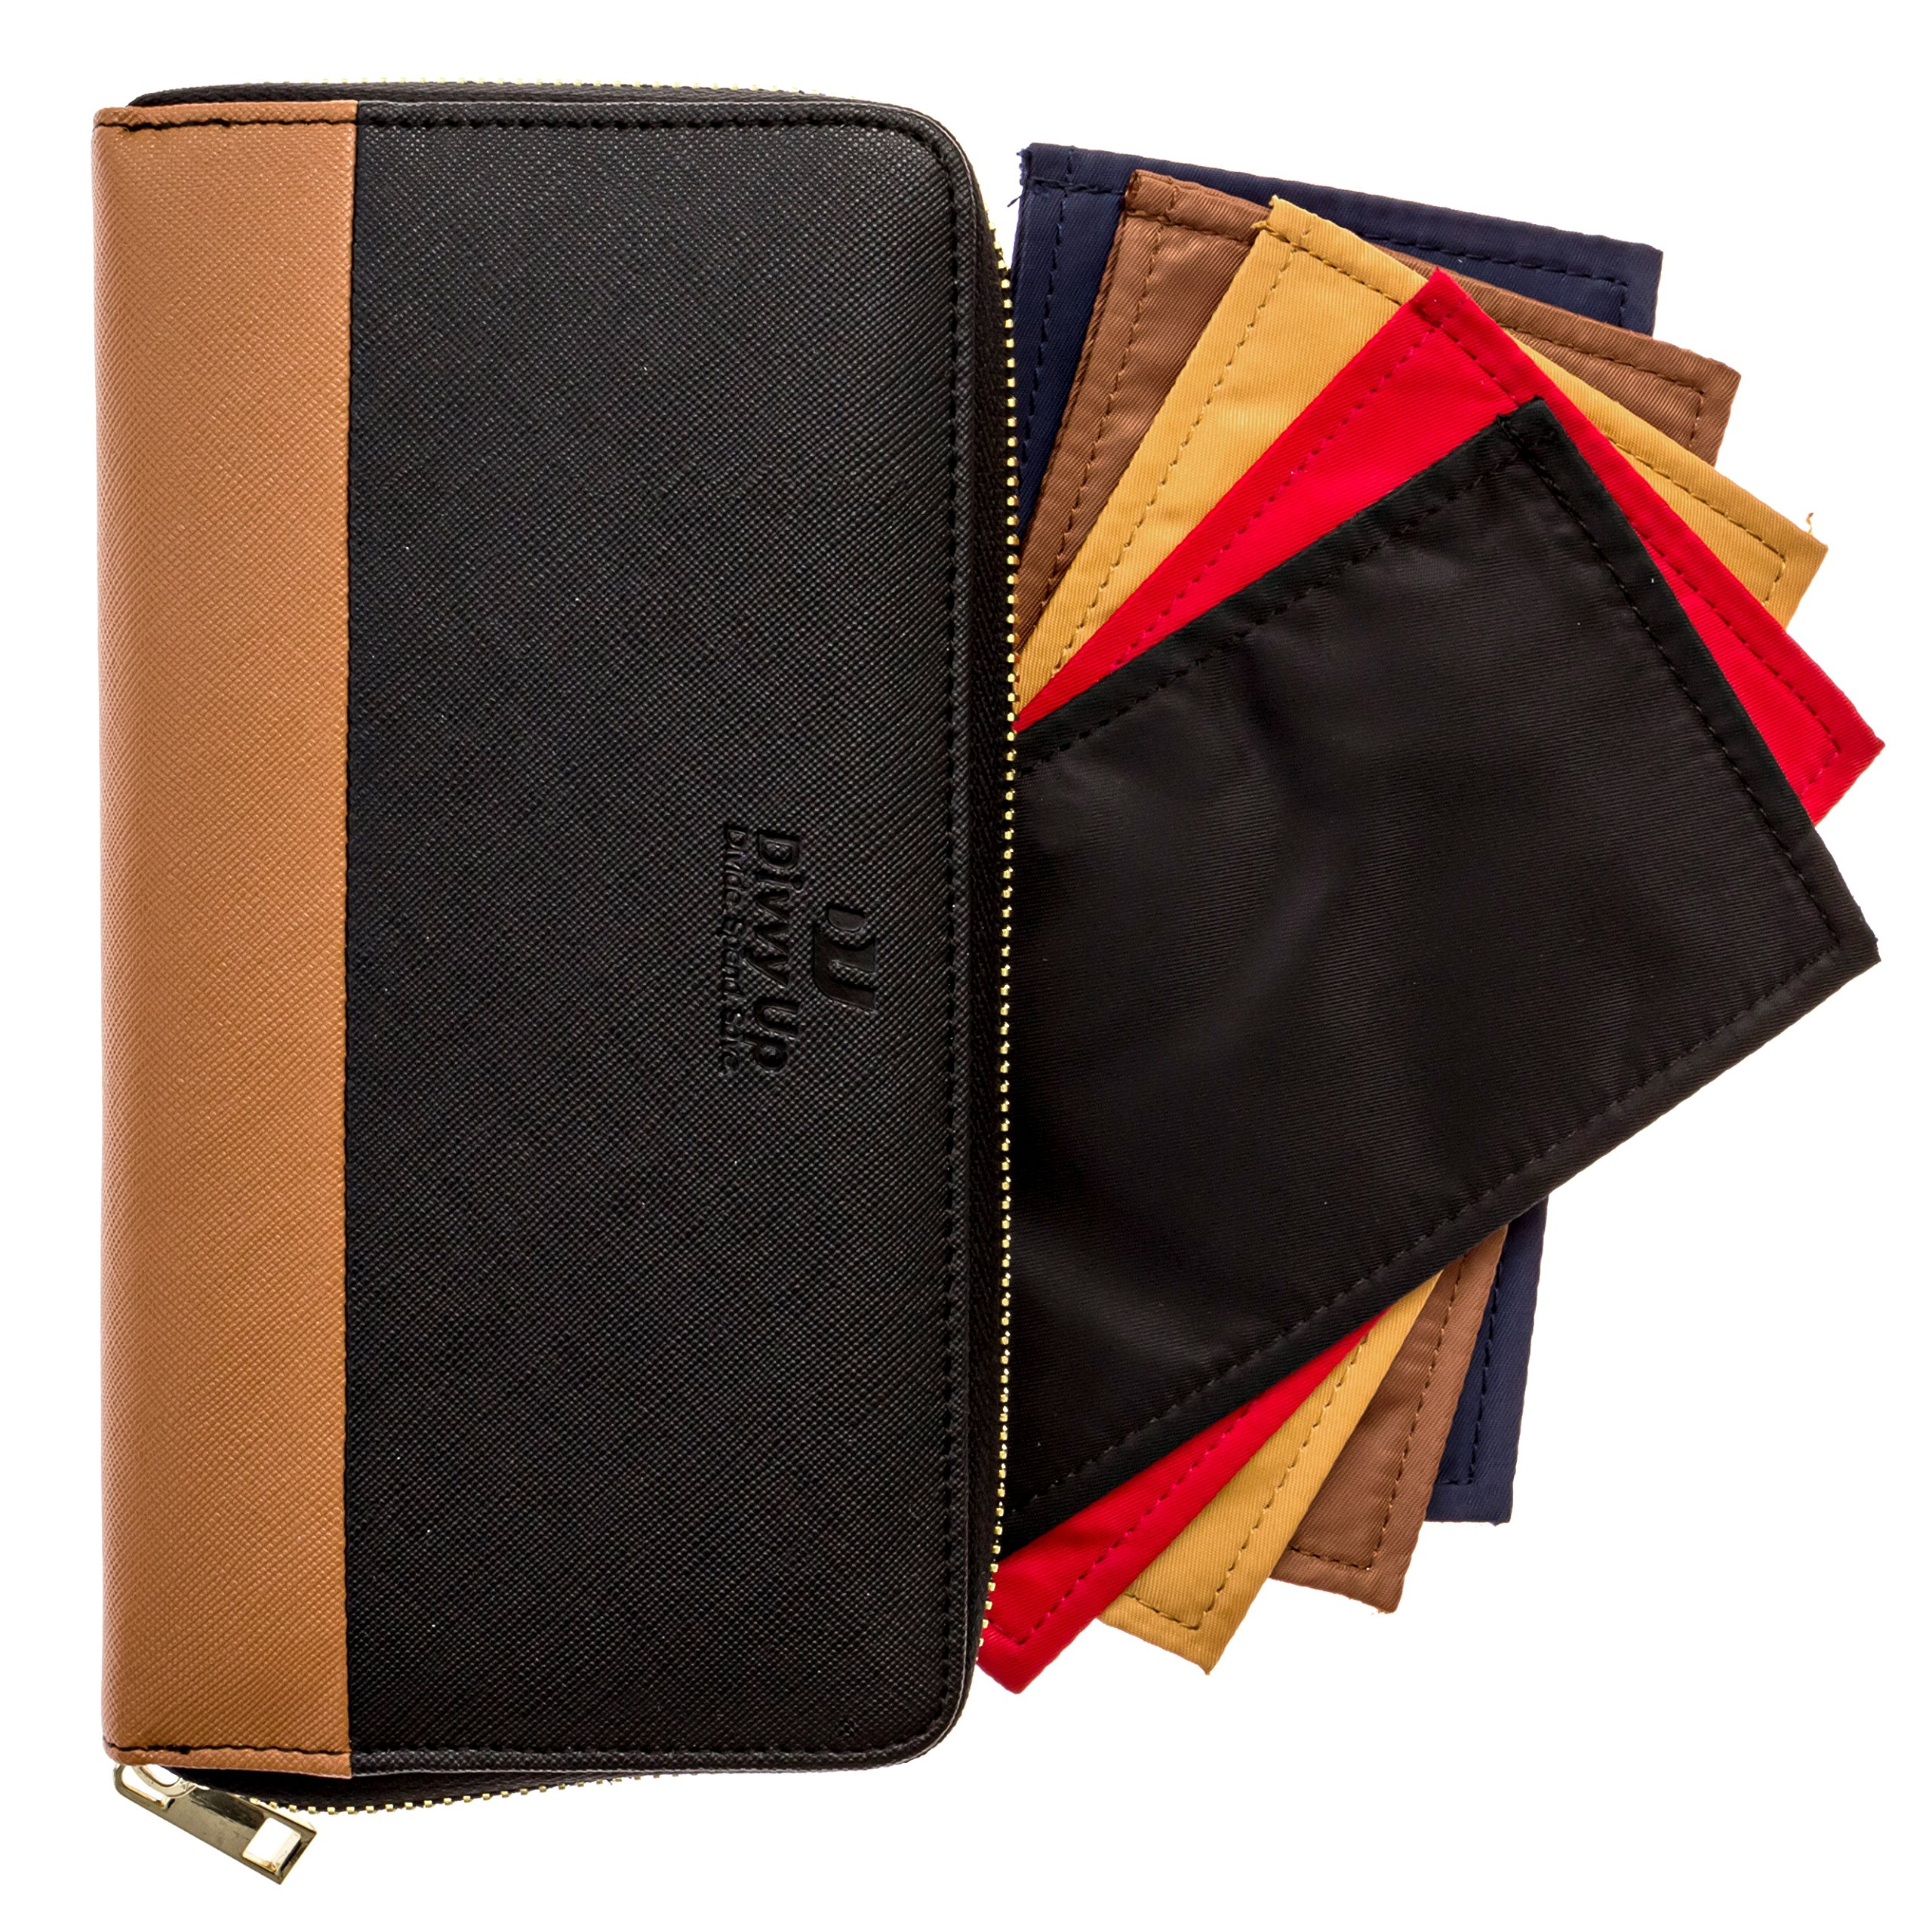 The Great Divide. A Cash System Wallet with 5 Magnetic Cash Envelopes by Divvy Up. (Black & Tan)